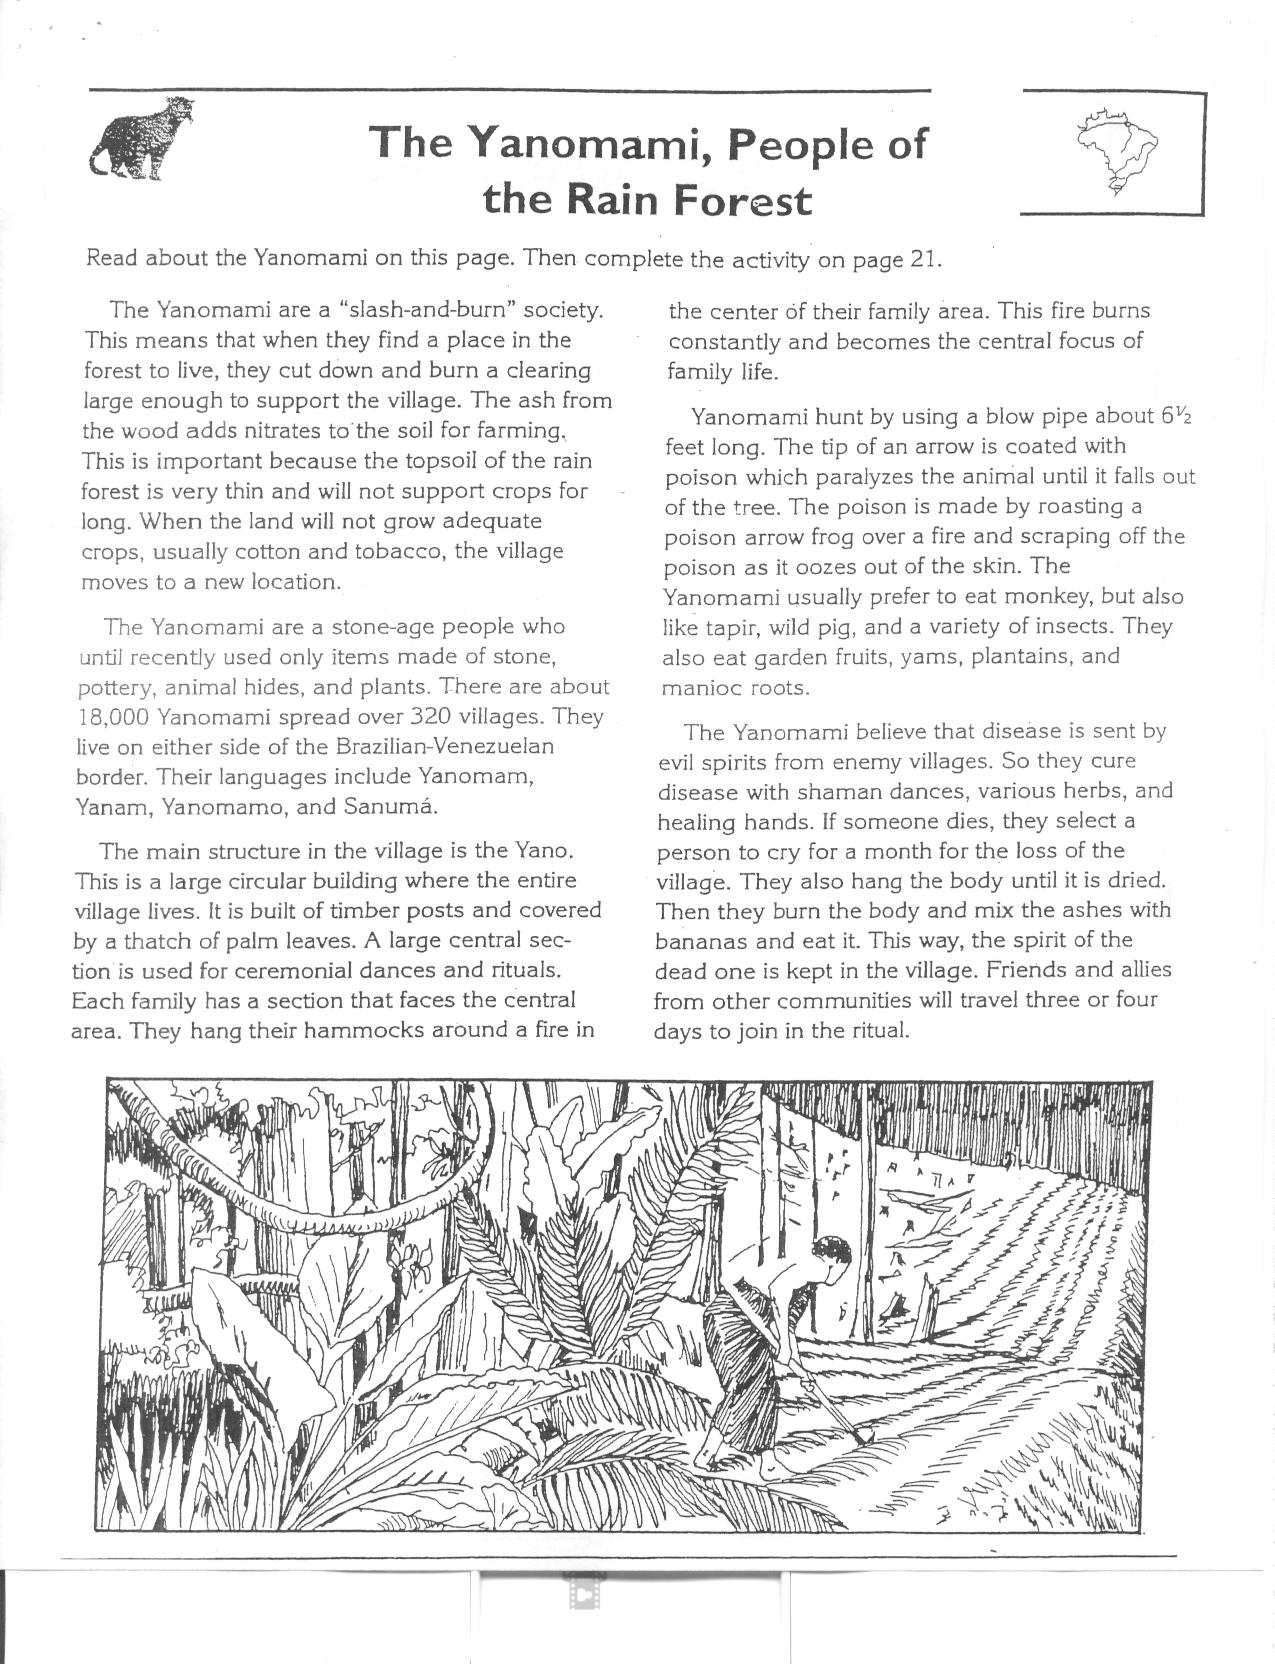 Worksheets Layers Of The Rainforest Worksheet new page 0 students will compare the lives of amazonian people yanomami to their amazon rainforest packet